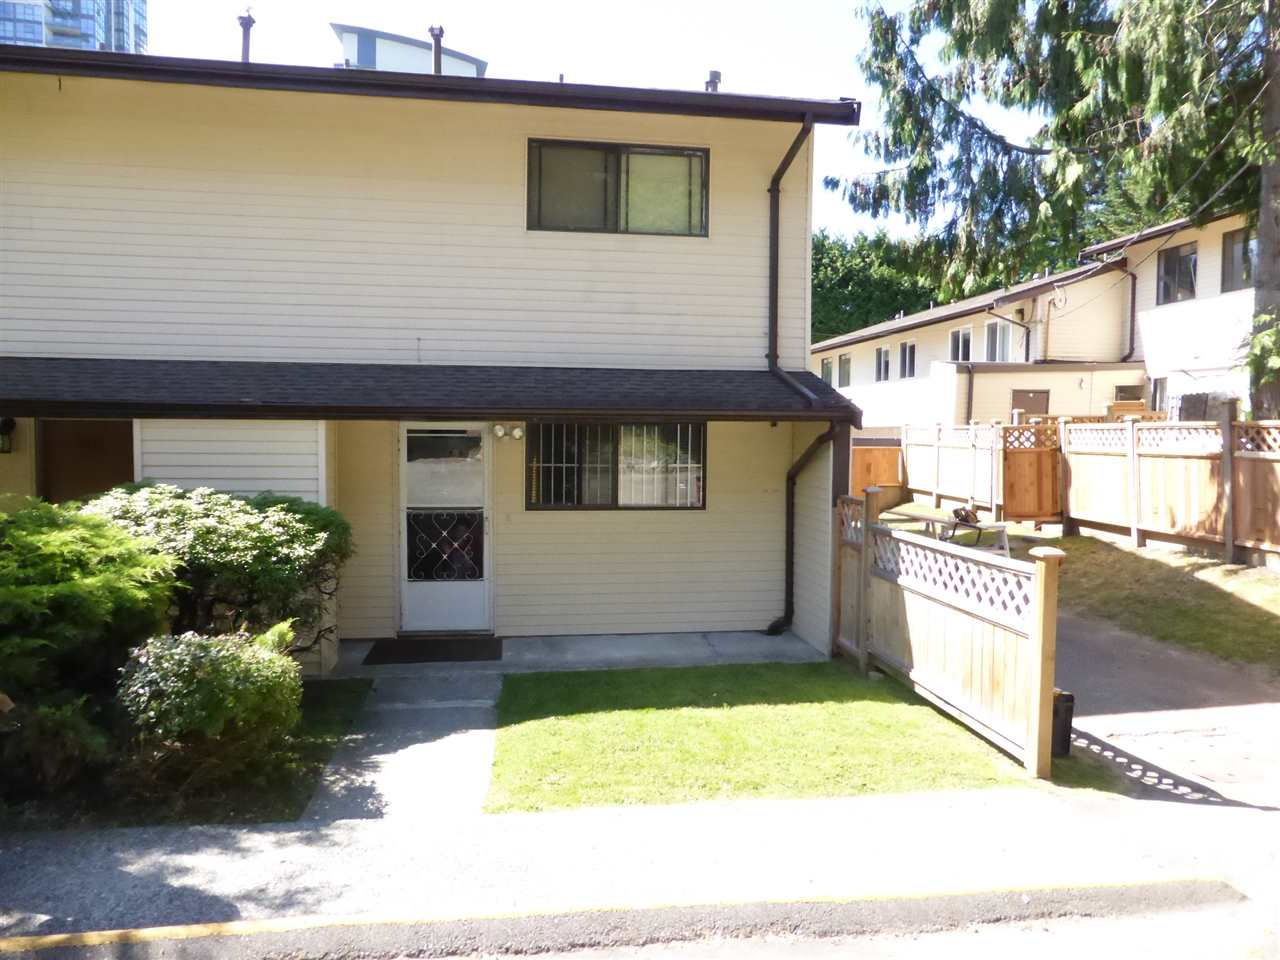 Main Photo: 2035 HOLDOM Avenue in Burnaby: Parkcrest Townhouse for sale (Burnaby North)  : MLS® # R2185341